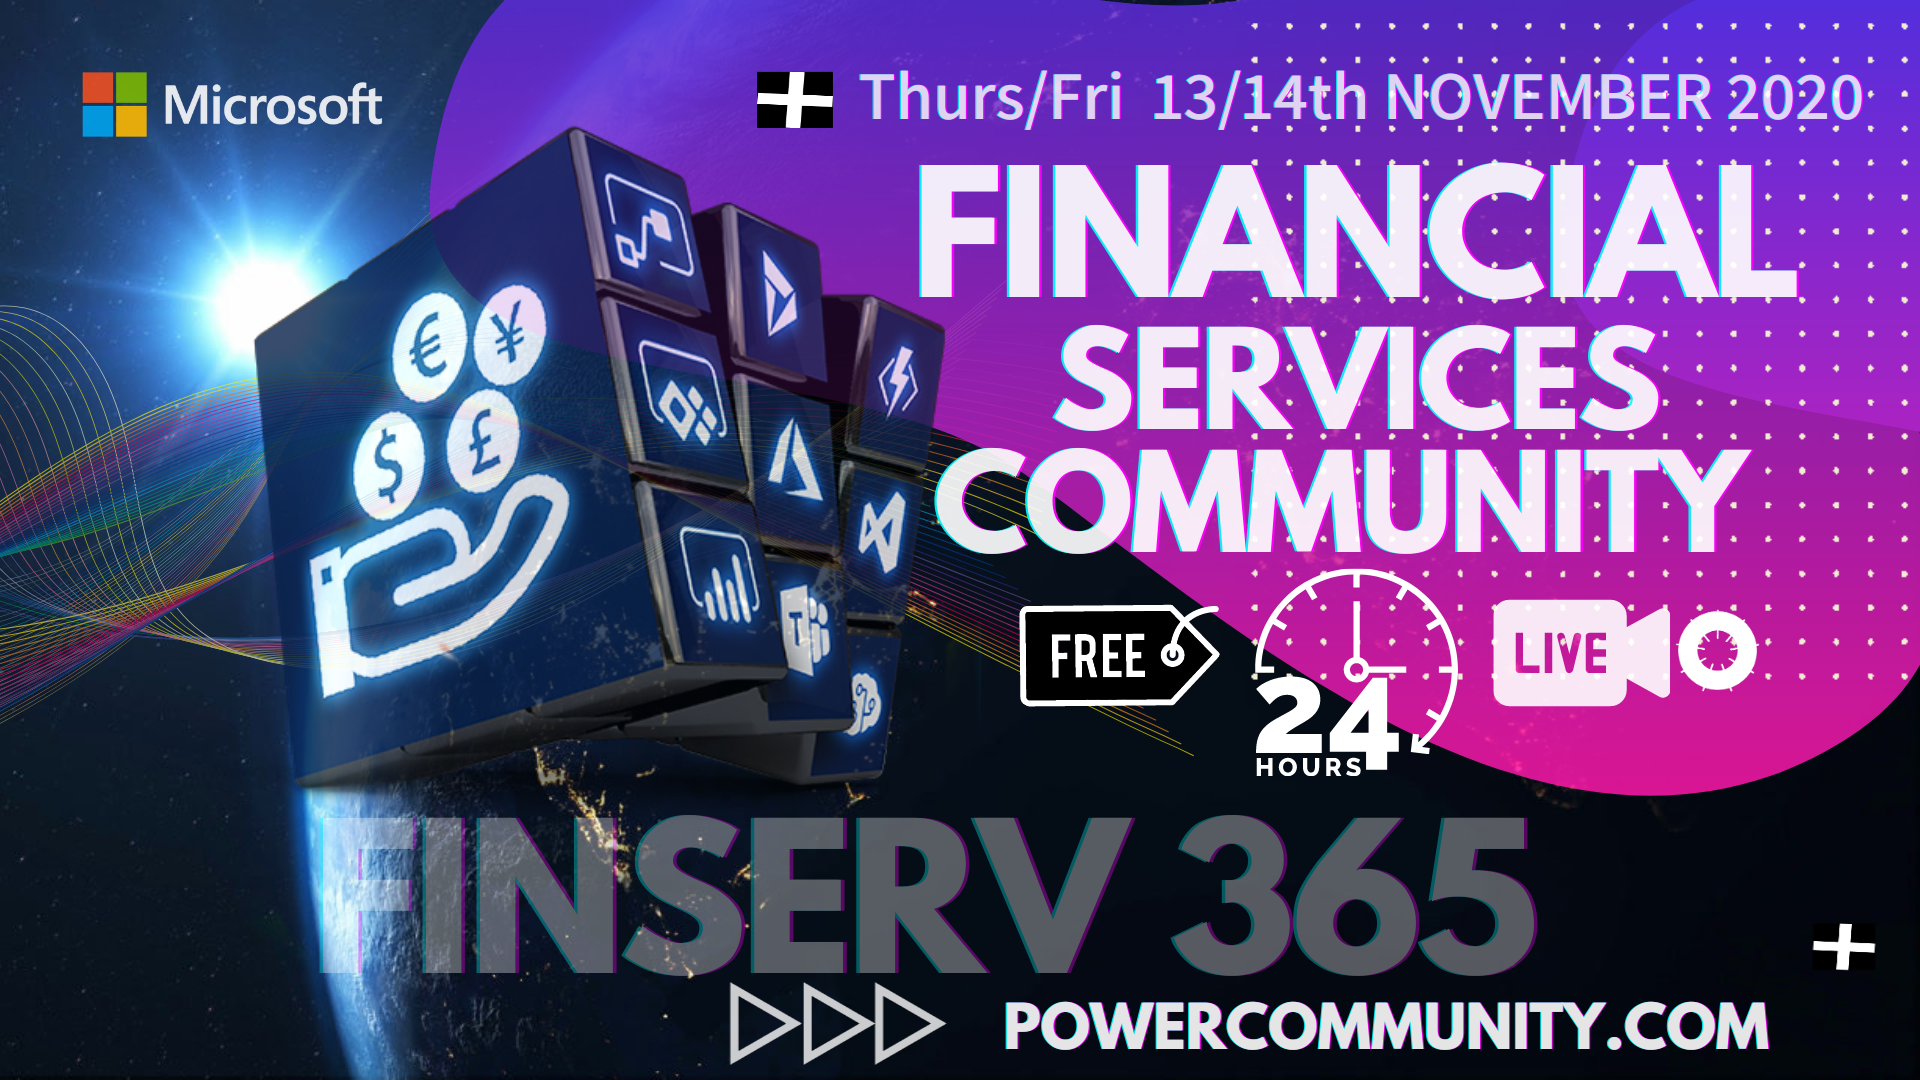 Financial Services Microsoft Community